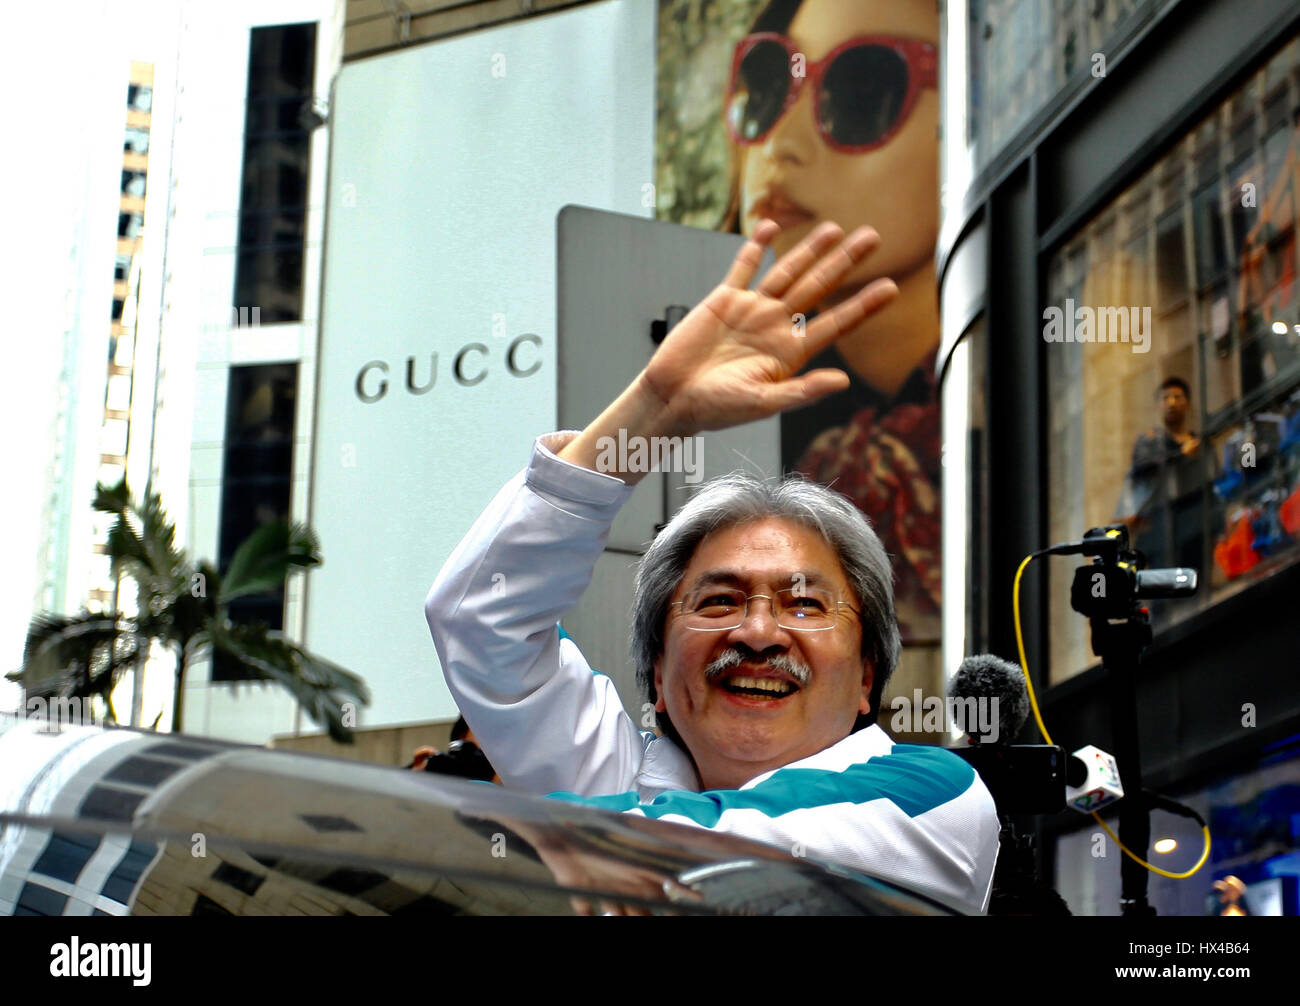 Former HKSAR Financial Secretary John Tsang wave to his supporters at the commercial hub Central with high spirit - Stock Image